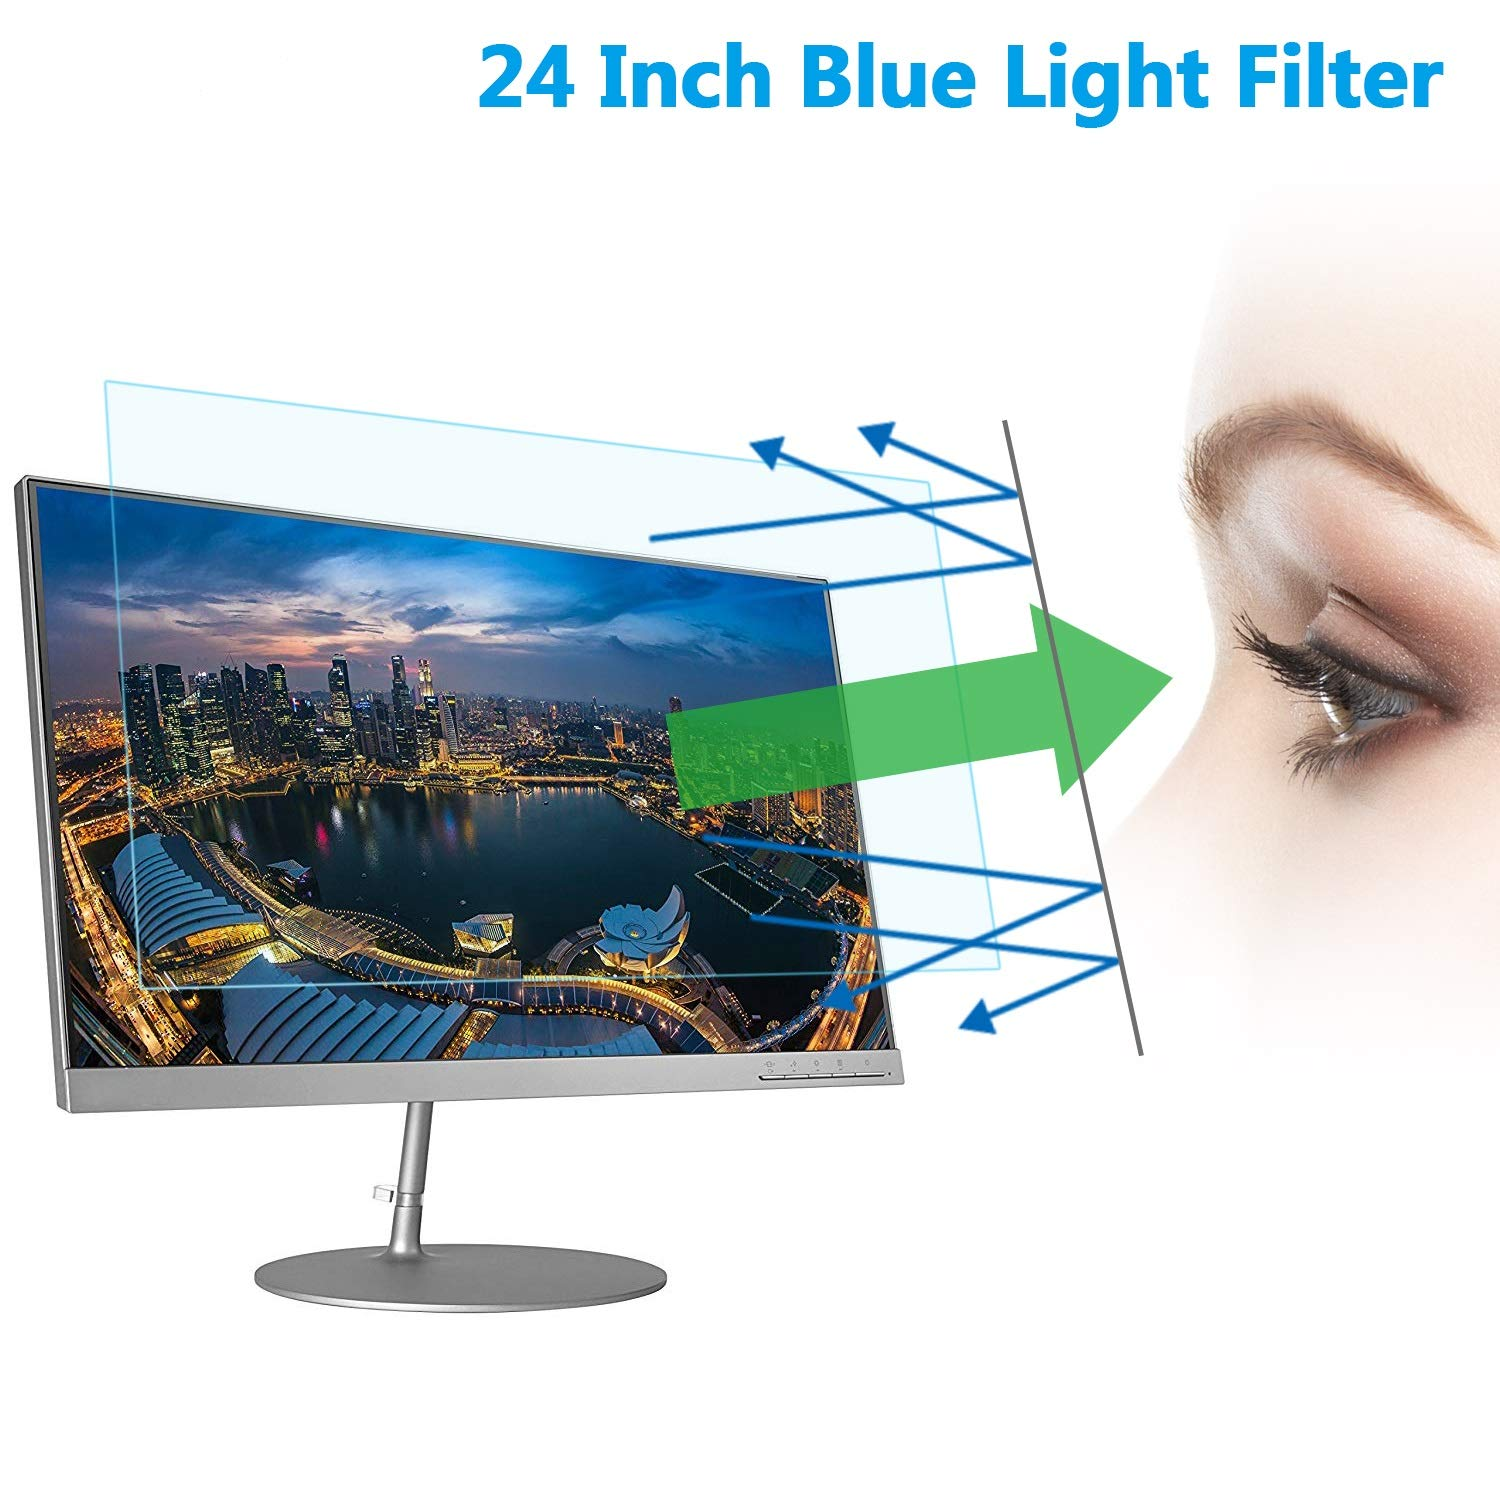 24'' Computer Anti Blue Light Screen Protector, Eye Protection Reduce Eye Fatigue and Eye Strain for 24 inches Widescreen Desktop Monitor by LILIONGTH (Image #1)